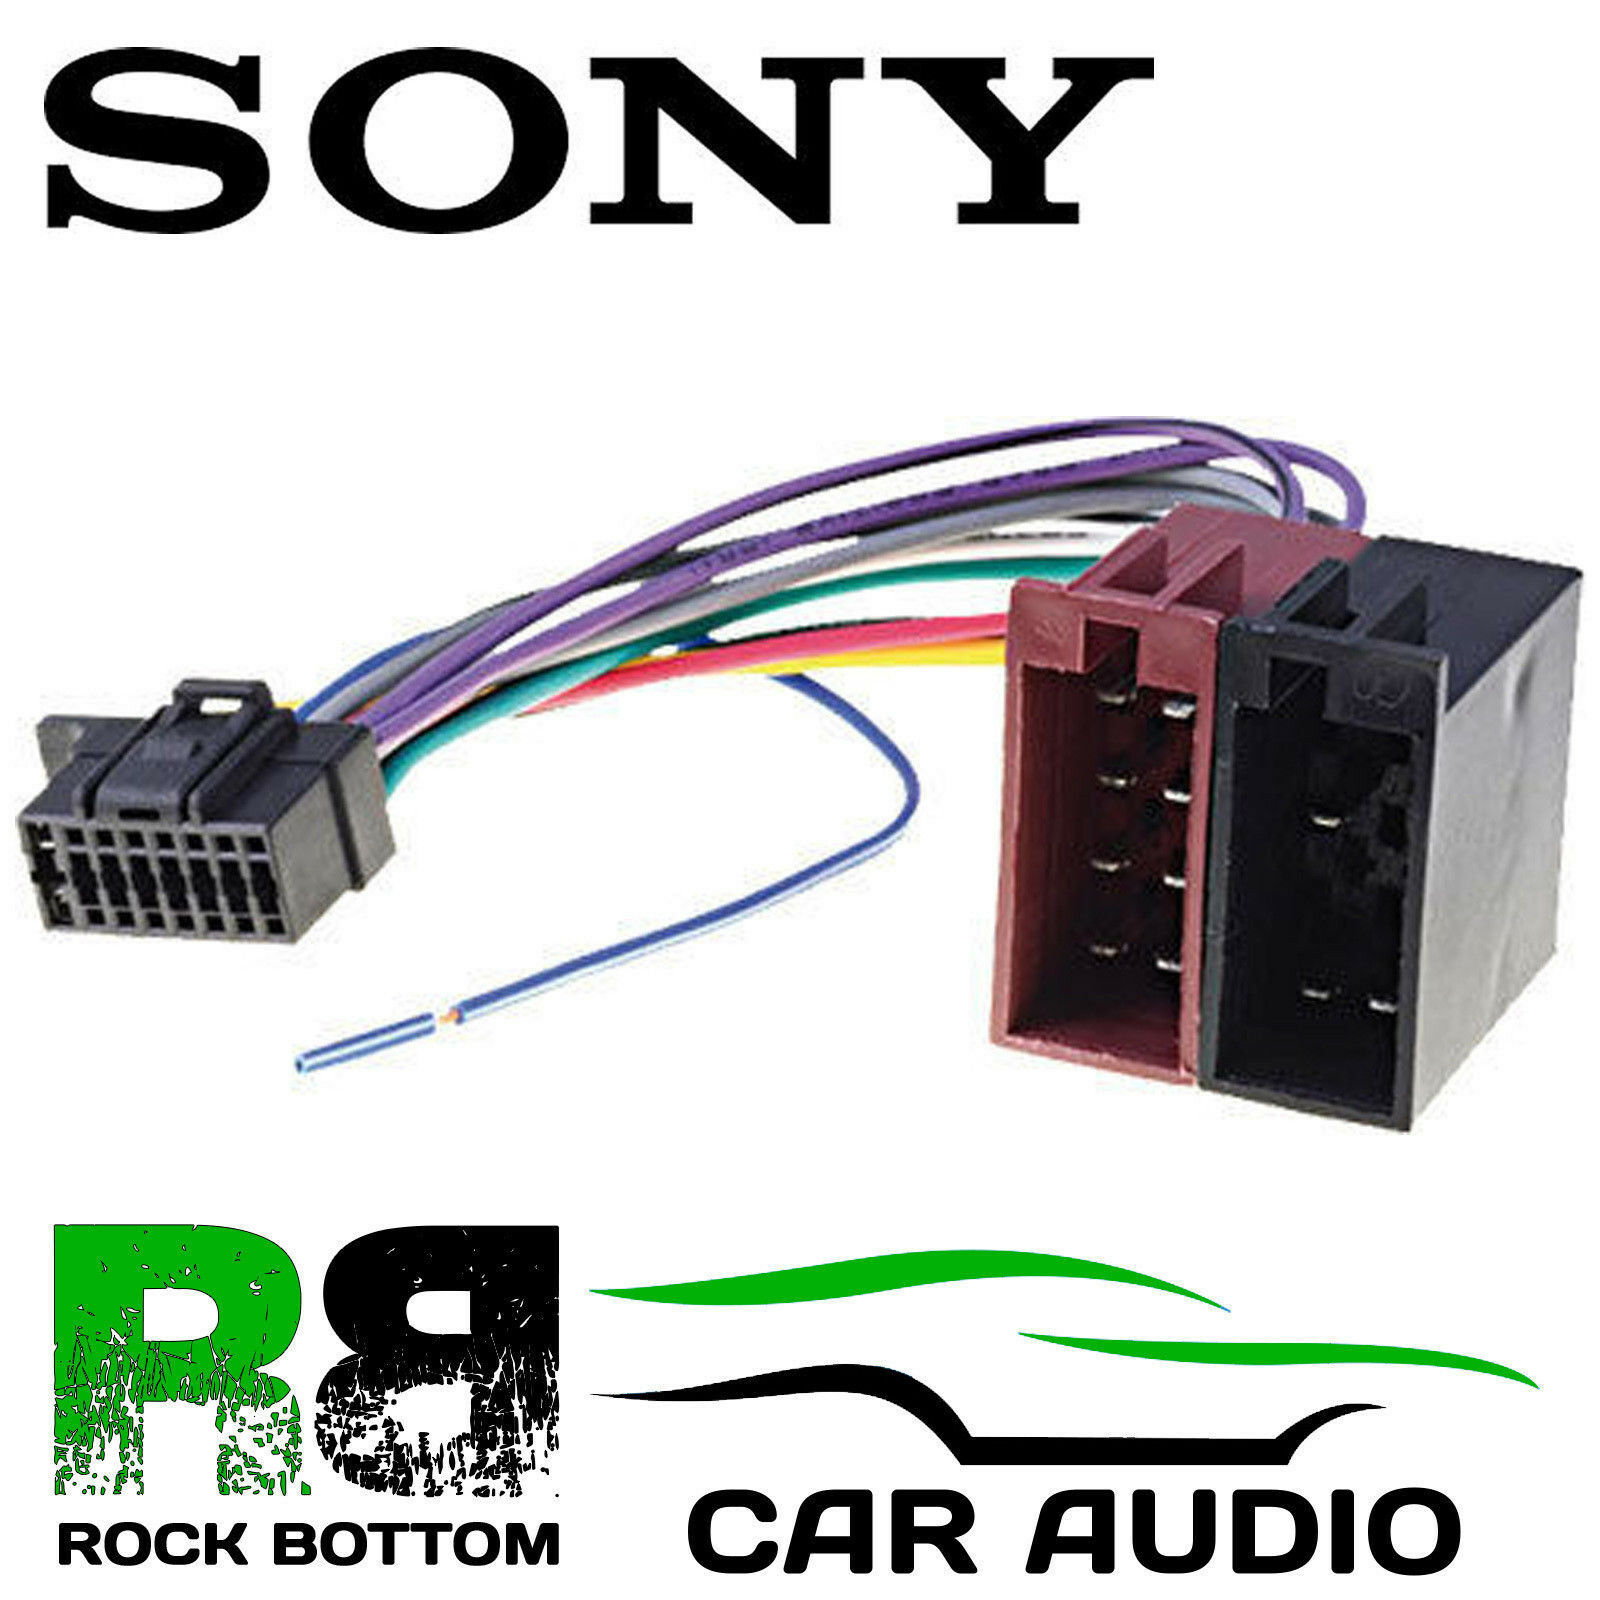 Sony Dsx A202ui Car Radio Stereo 16 Pin Wiring Harness Loom Iso Lead Adaptor 1 Of 1free Shipping See More